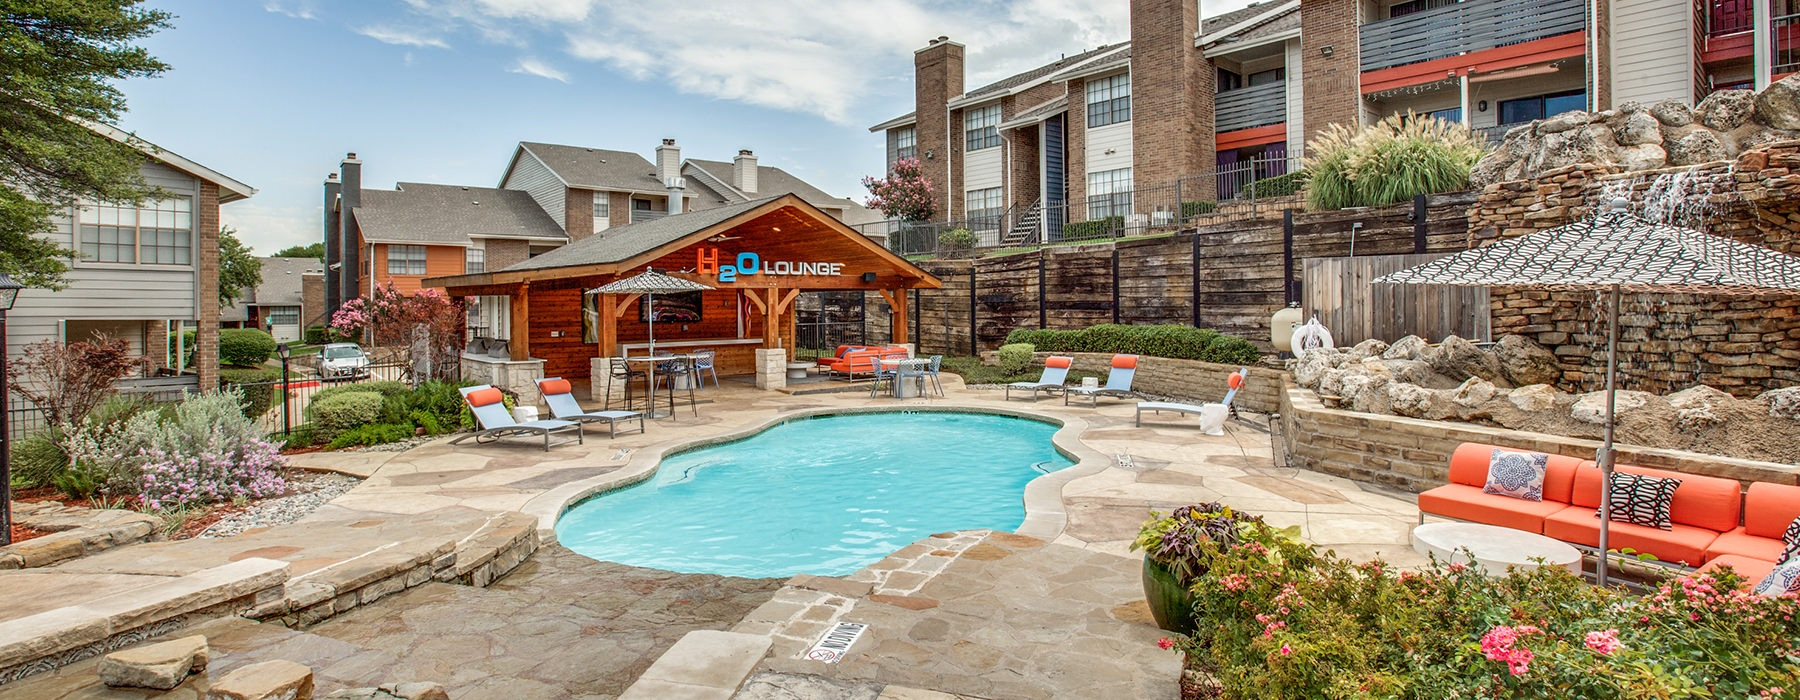 Pool area with ample seating and lounge